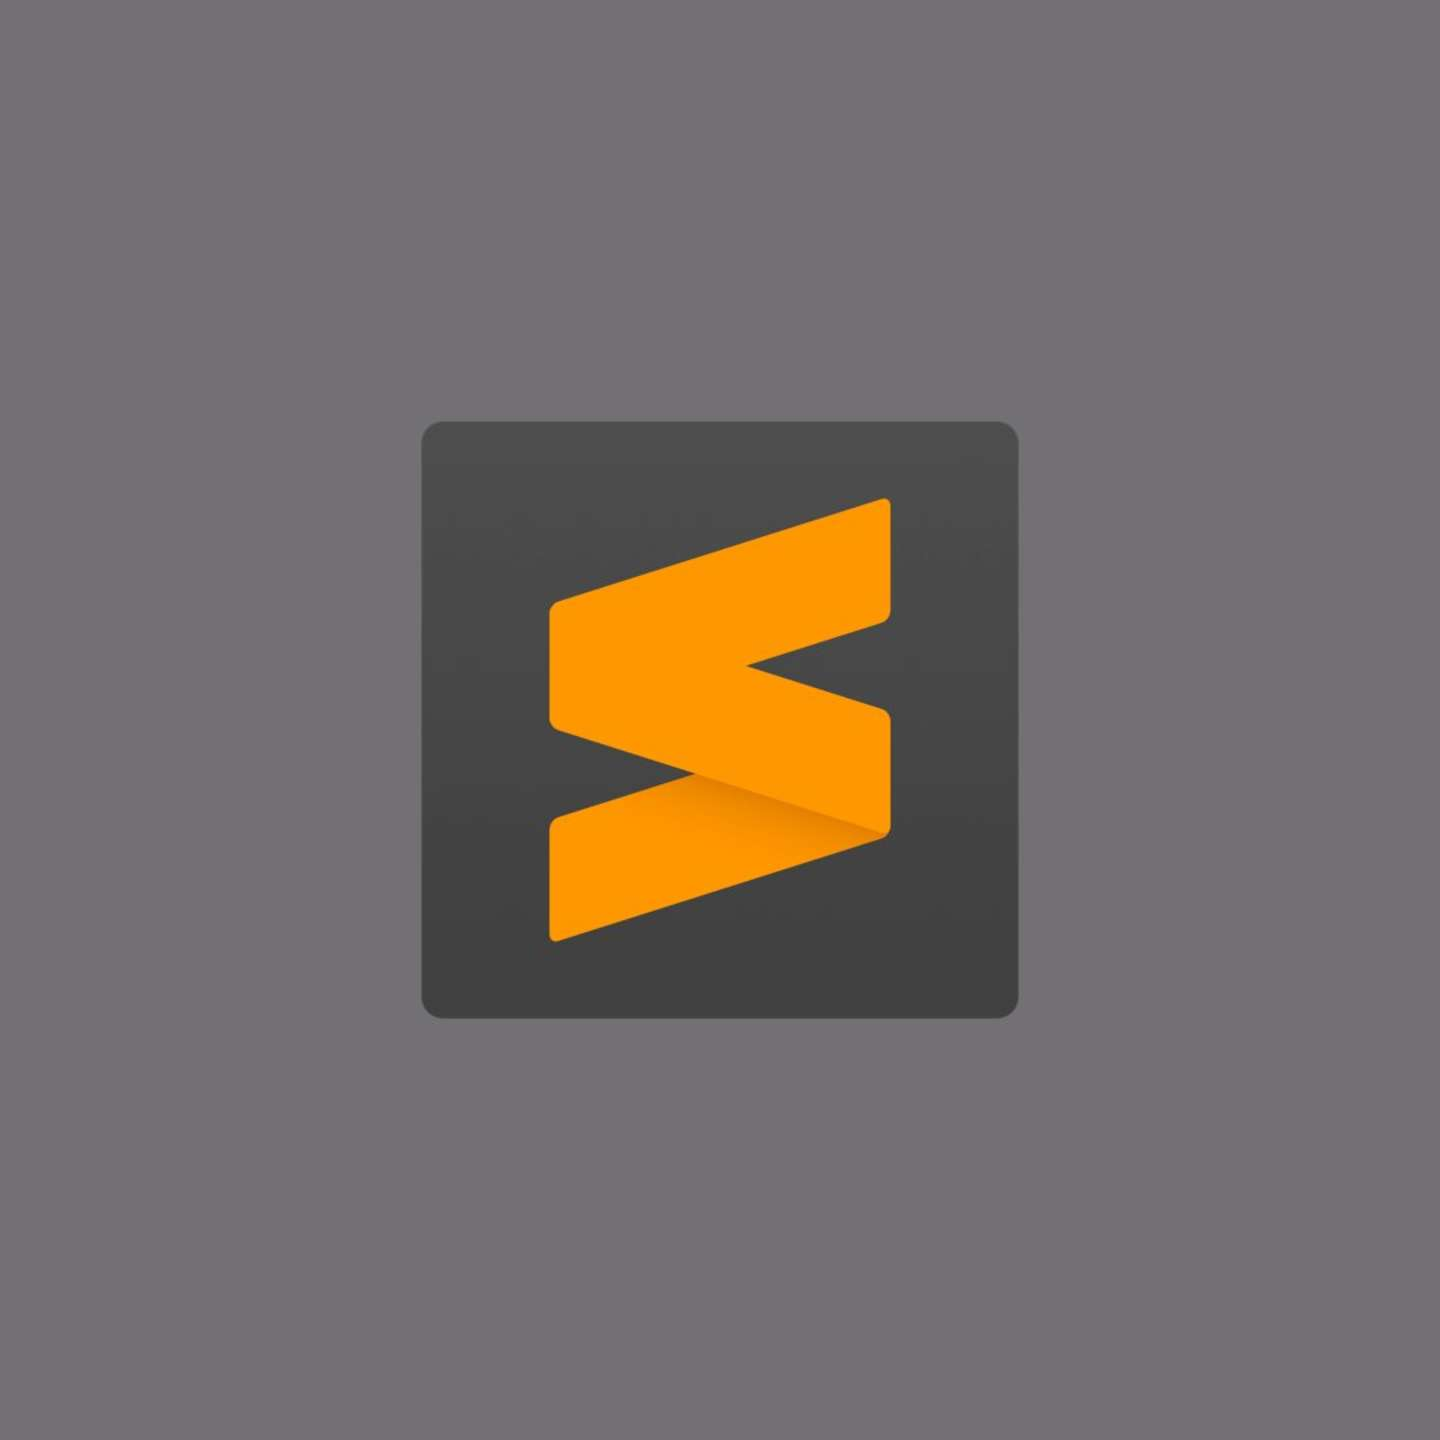 Sublime Text: How to open files in the same window - howchoo